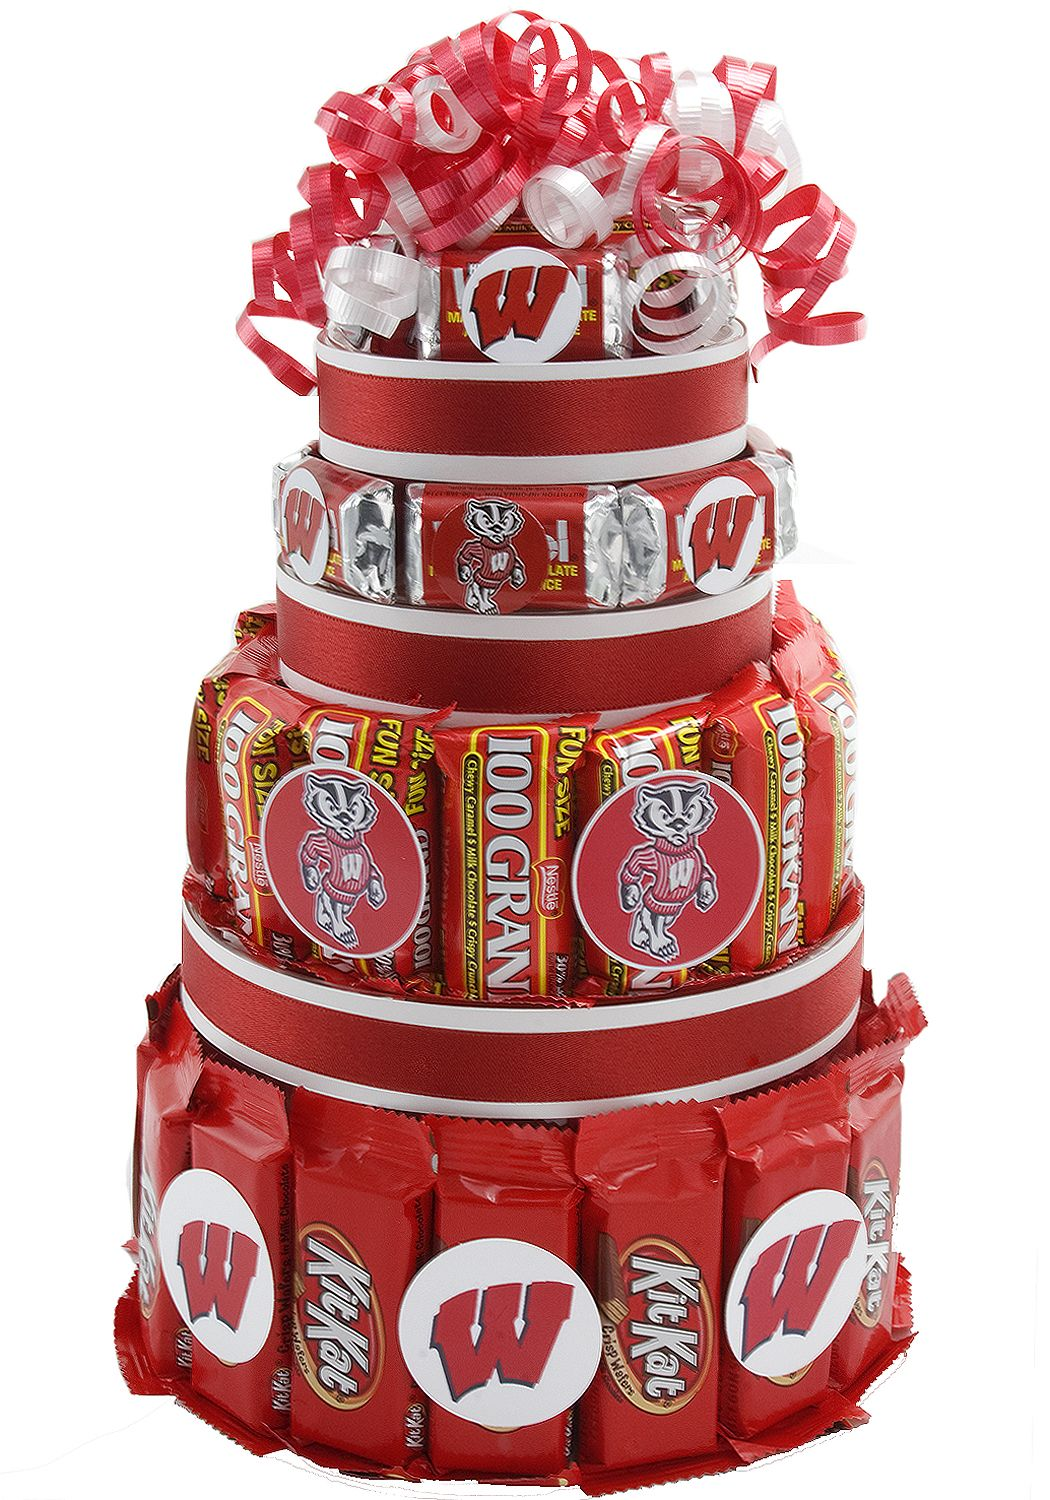 Wisconsin Badgers Candy Cake